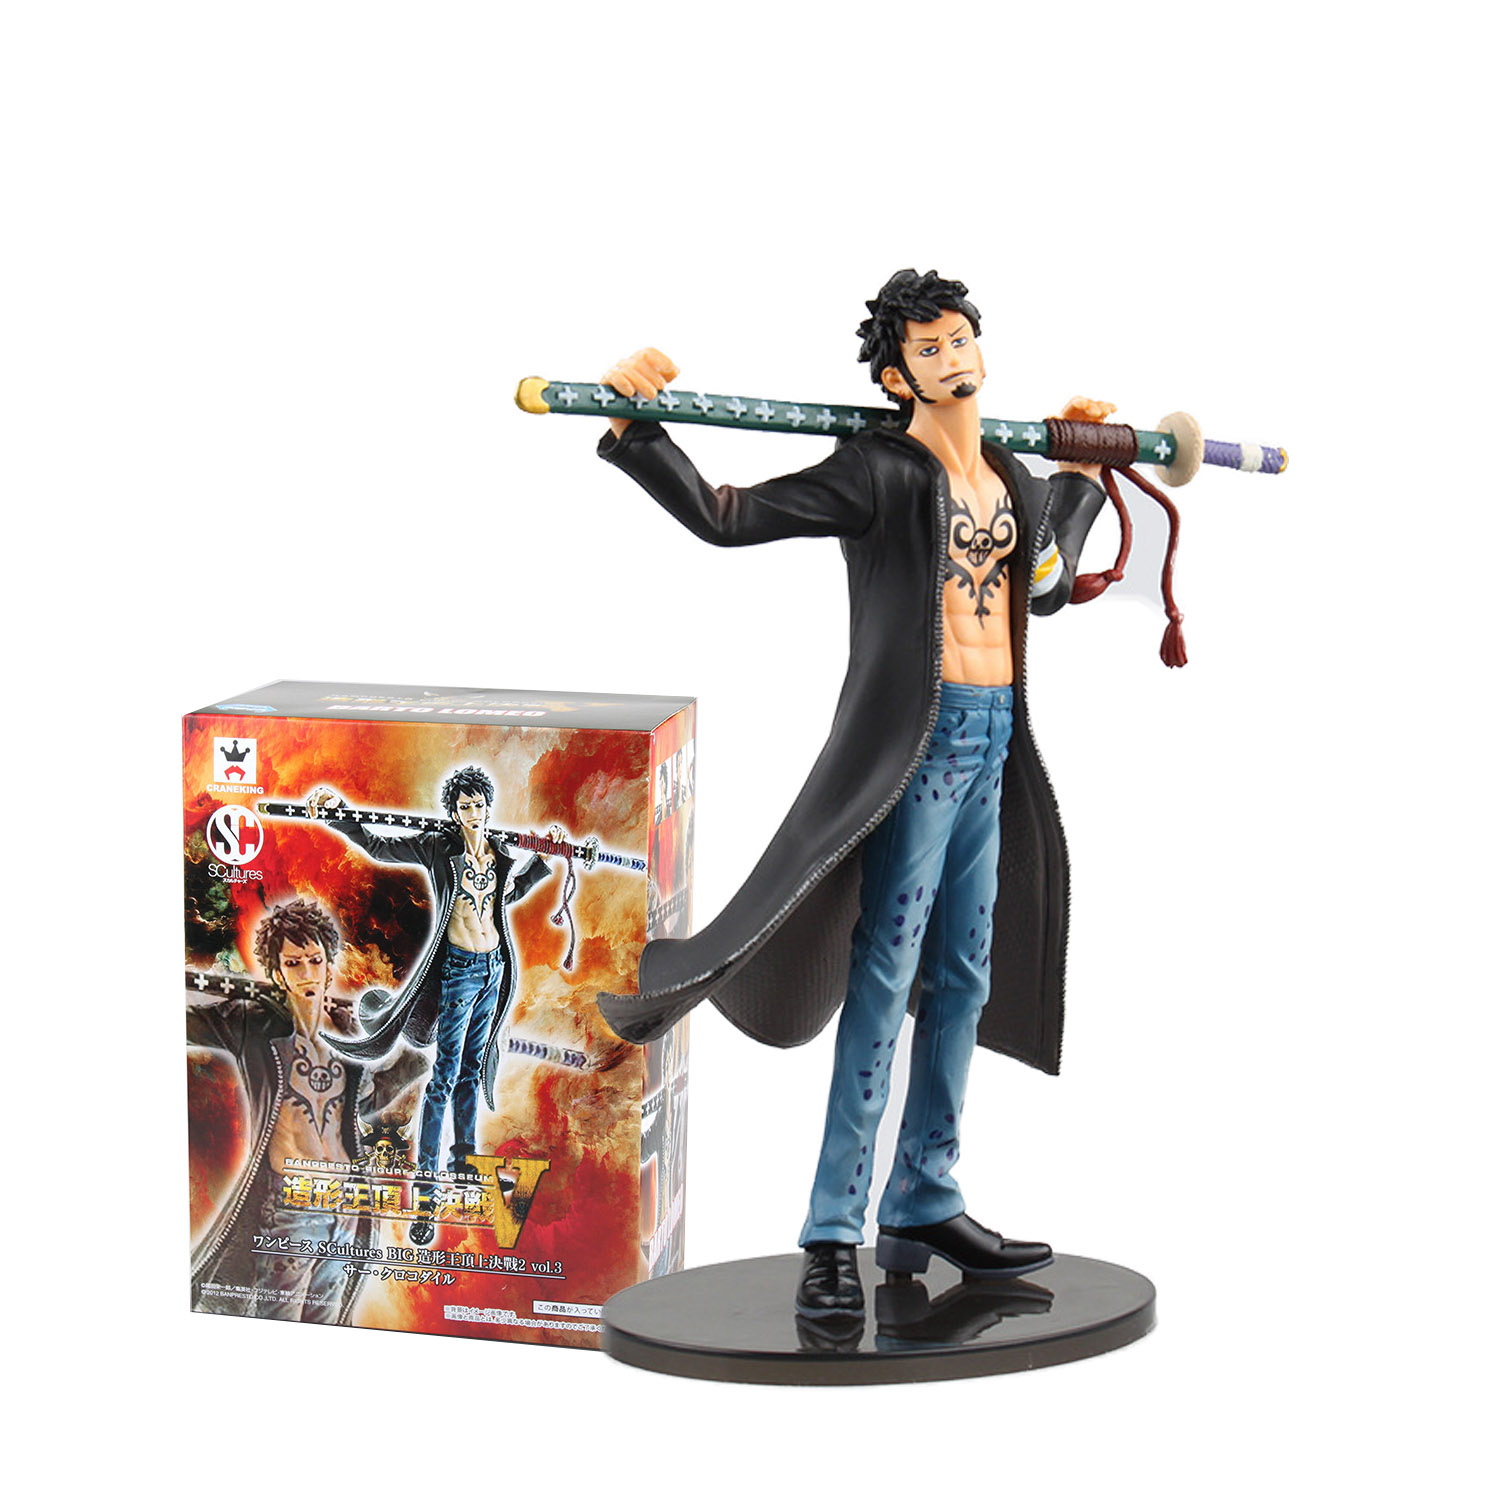 Chanycore Anime ONE PIECE SCultures BIG 18CM PVC Action Figures Trafalgar Law DXF collect model toys<br><br>Aliexpress